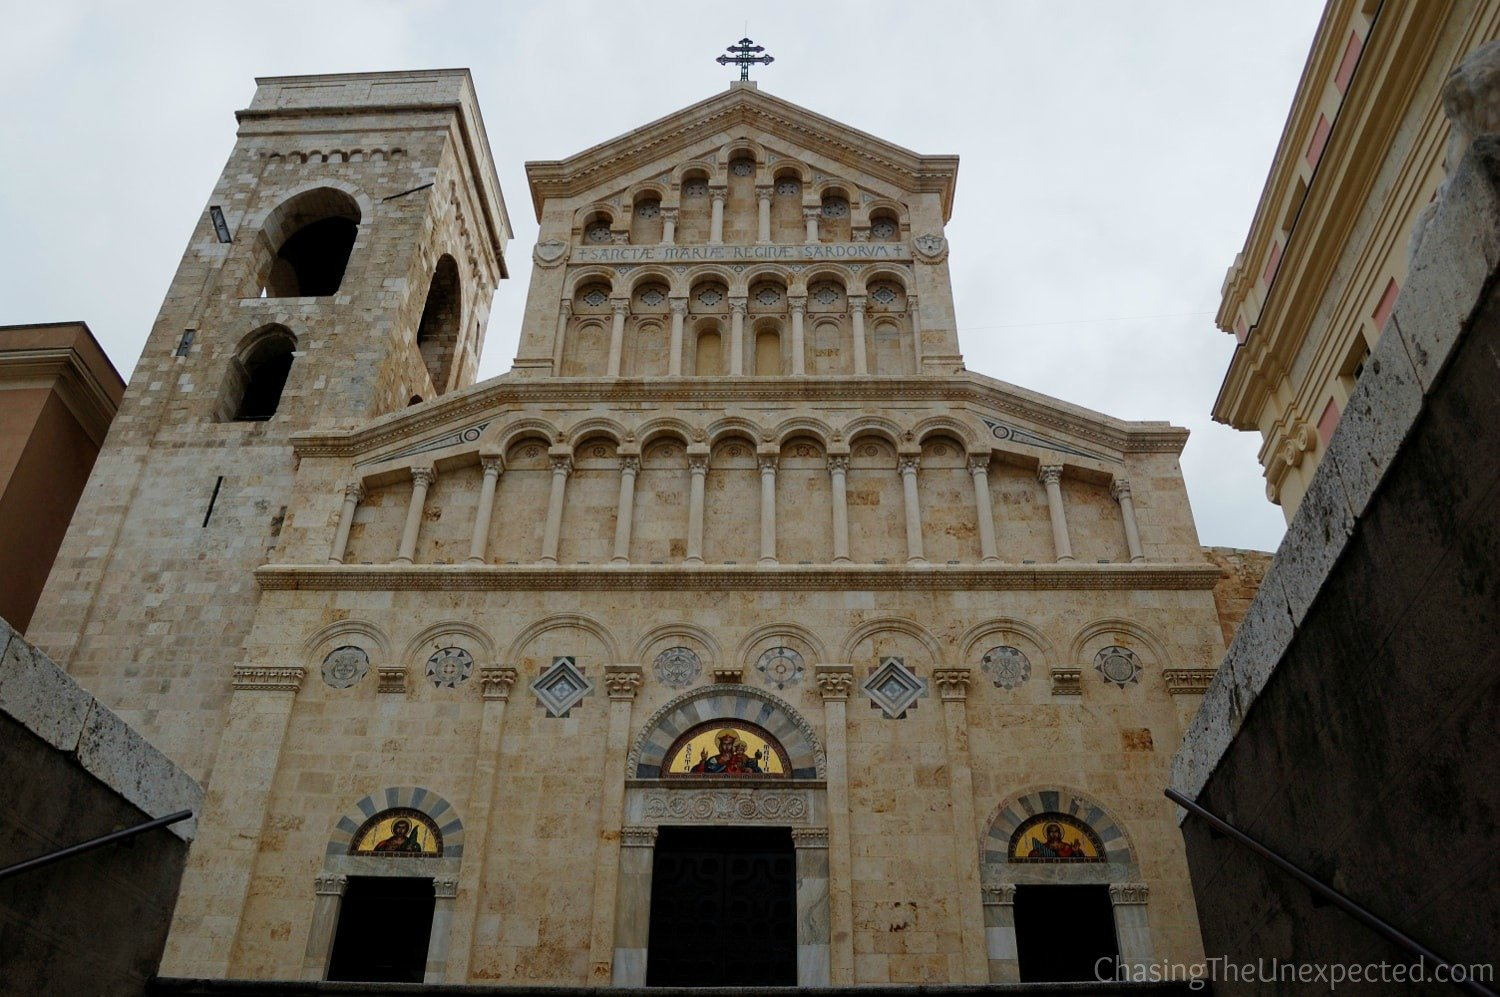 Cattedrale di Santa Maria, one of the first places to visit in Cagliari